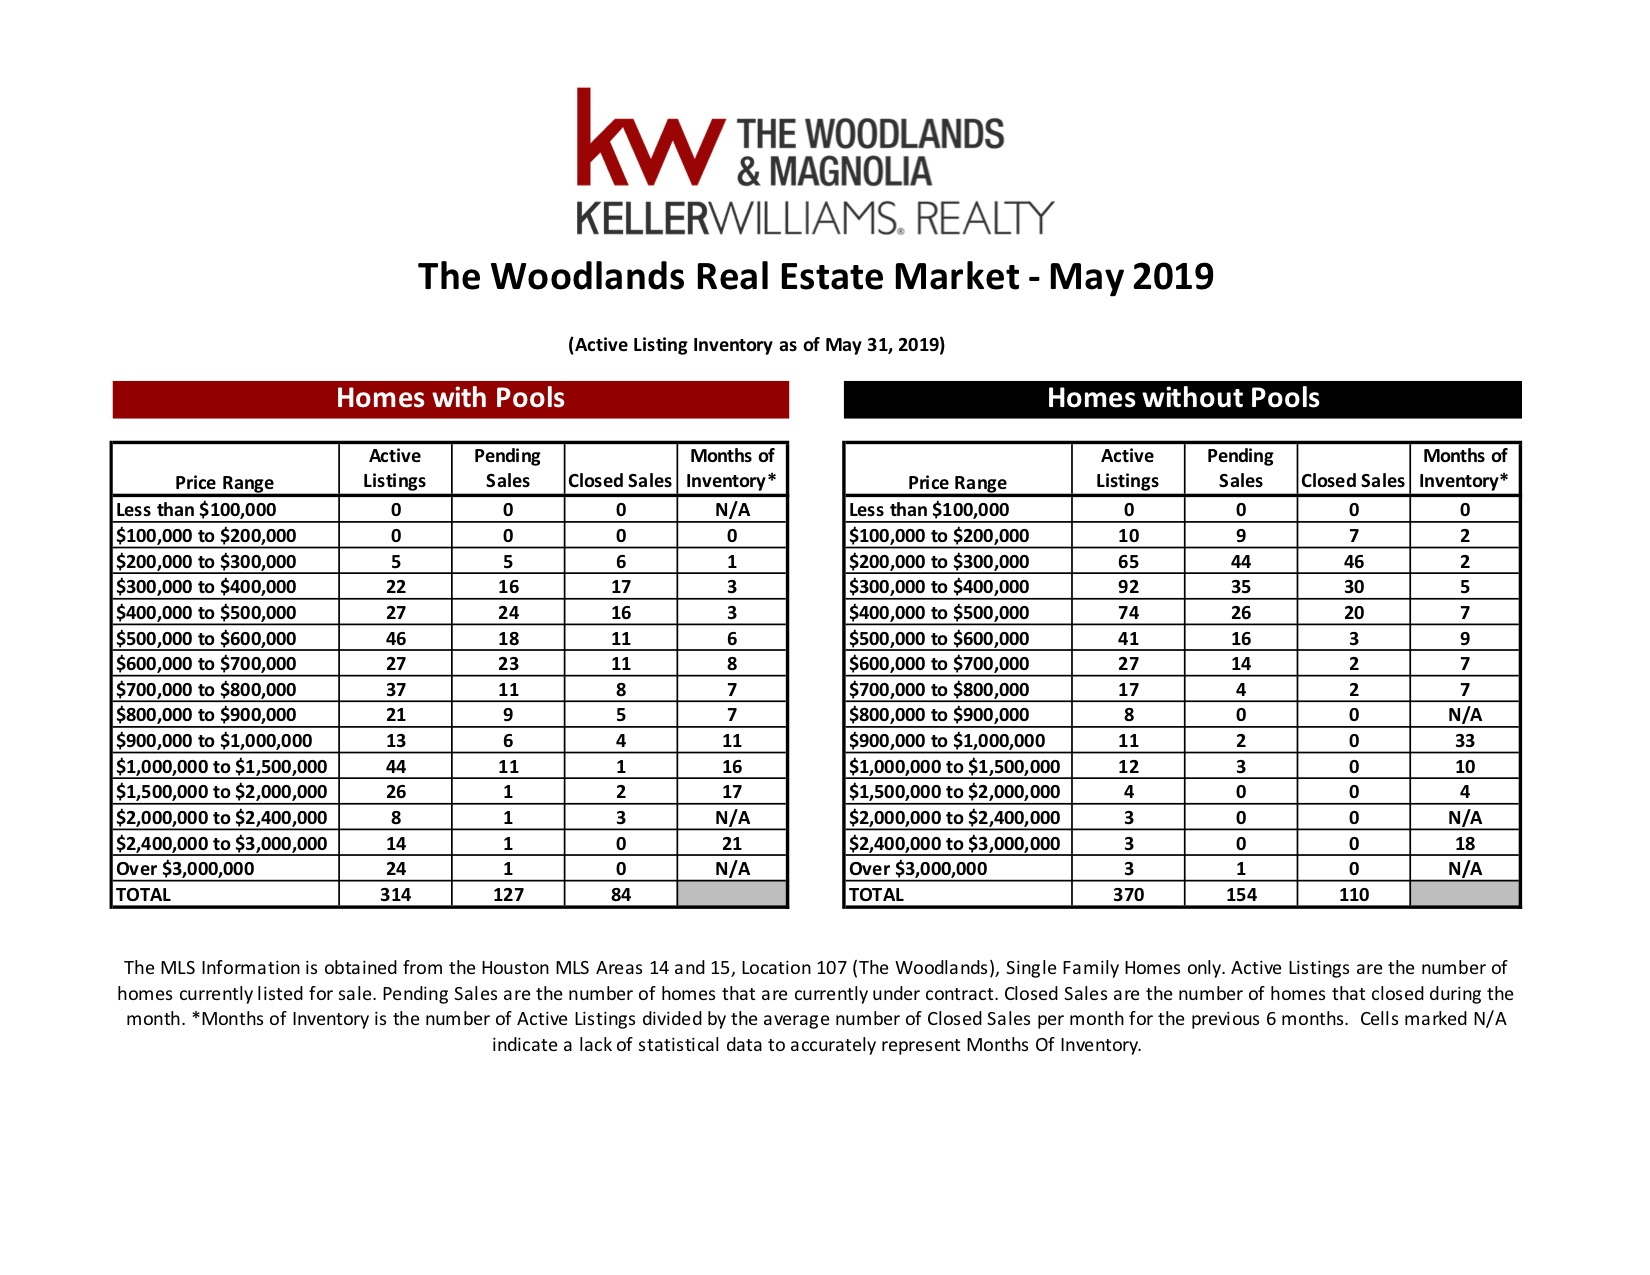 , May 2019 MarketWatch Report – The Woodlands, KW Woodlands